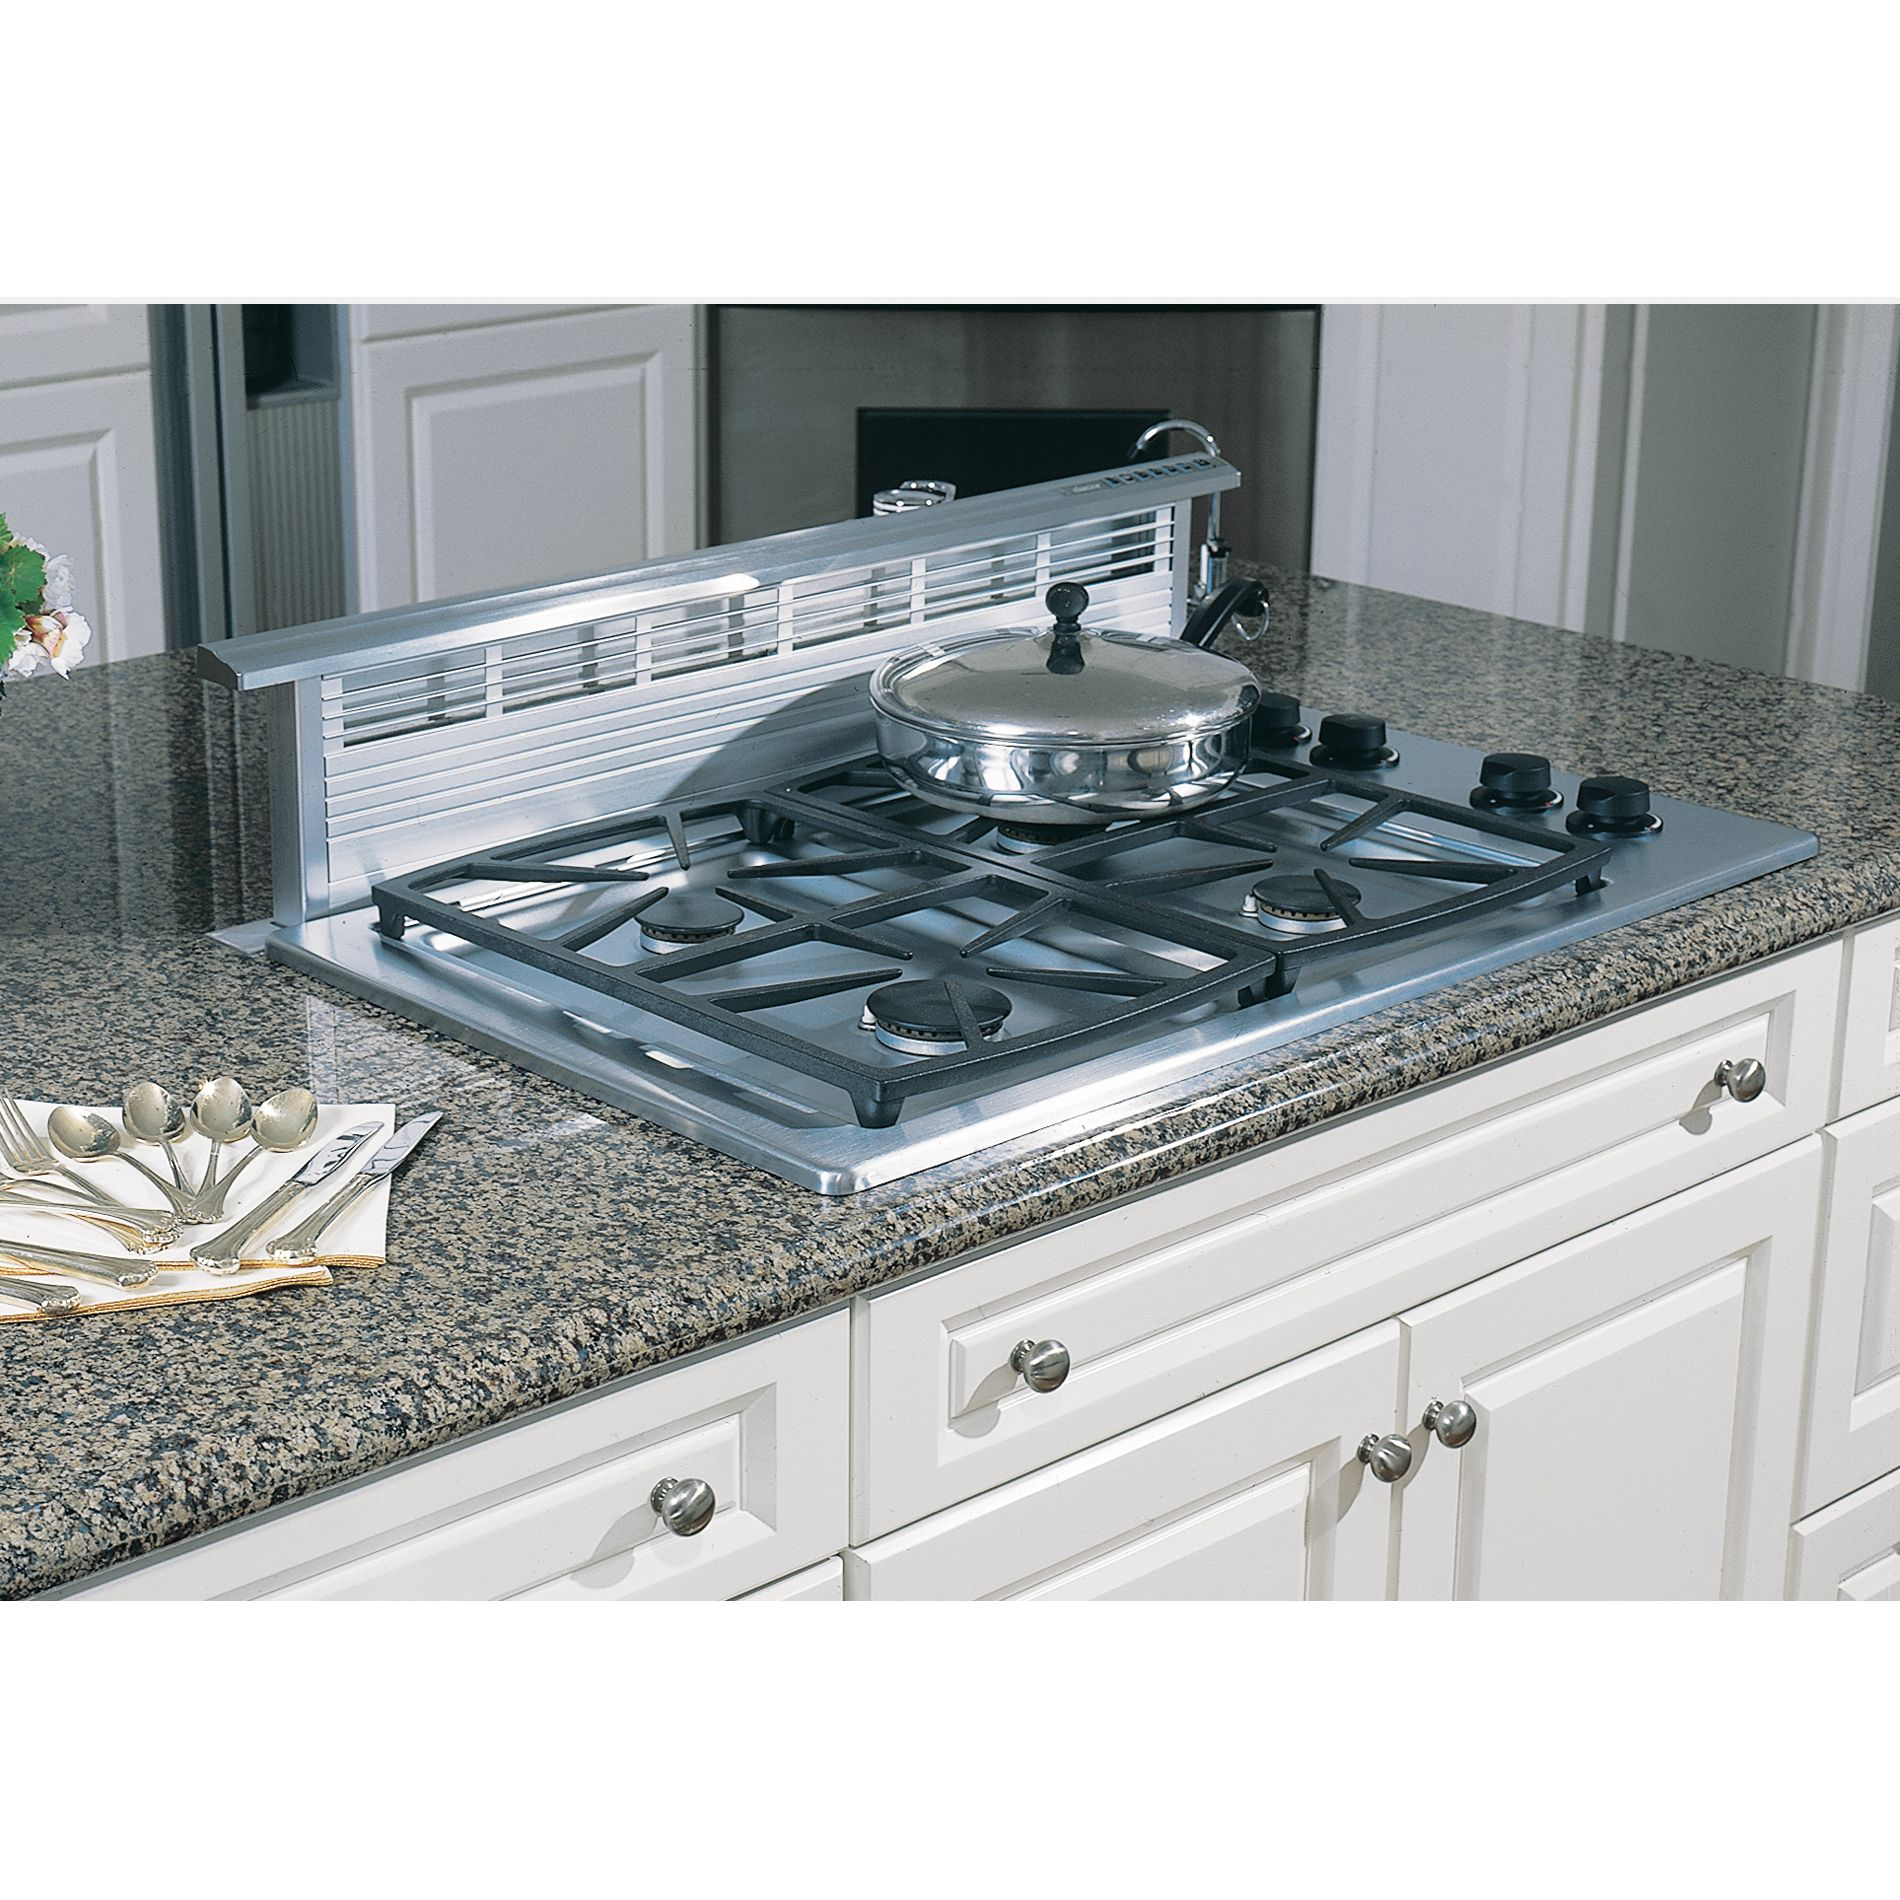 "Dacor SGM304SLP Classic 30"" Gas Cooktop, Stainless Steel - Liquid Propane"